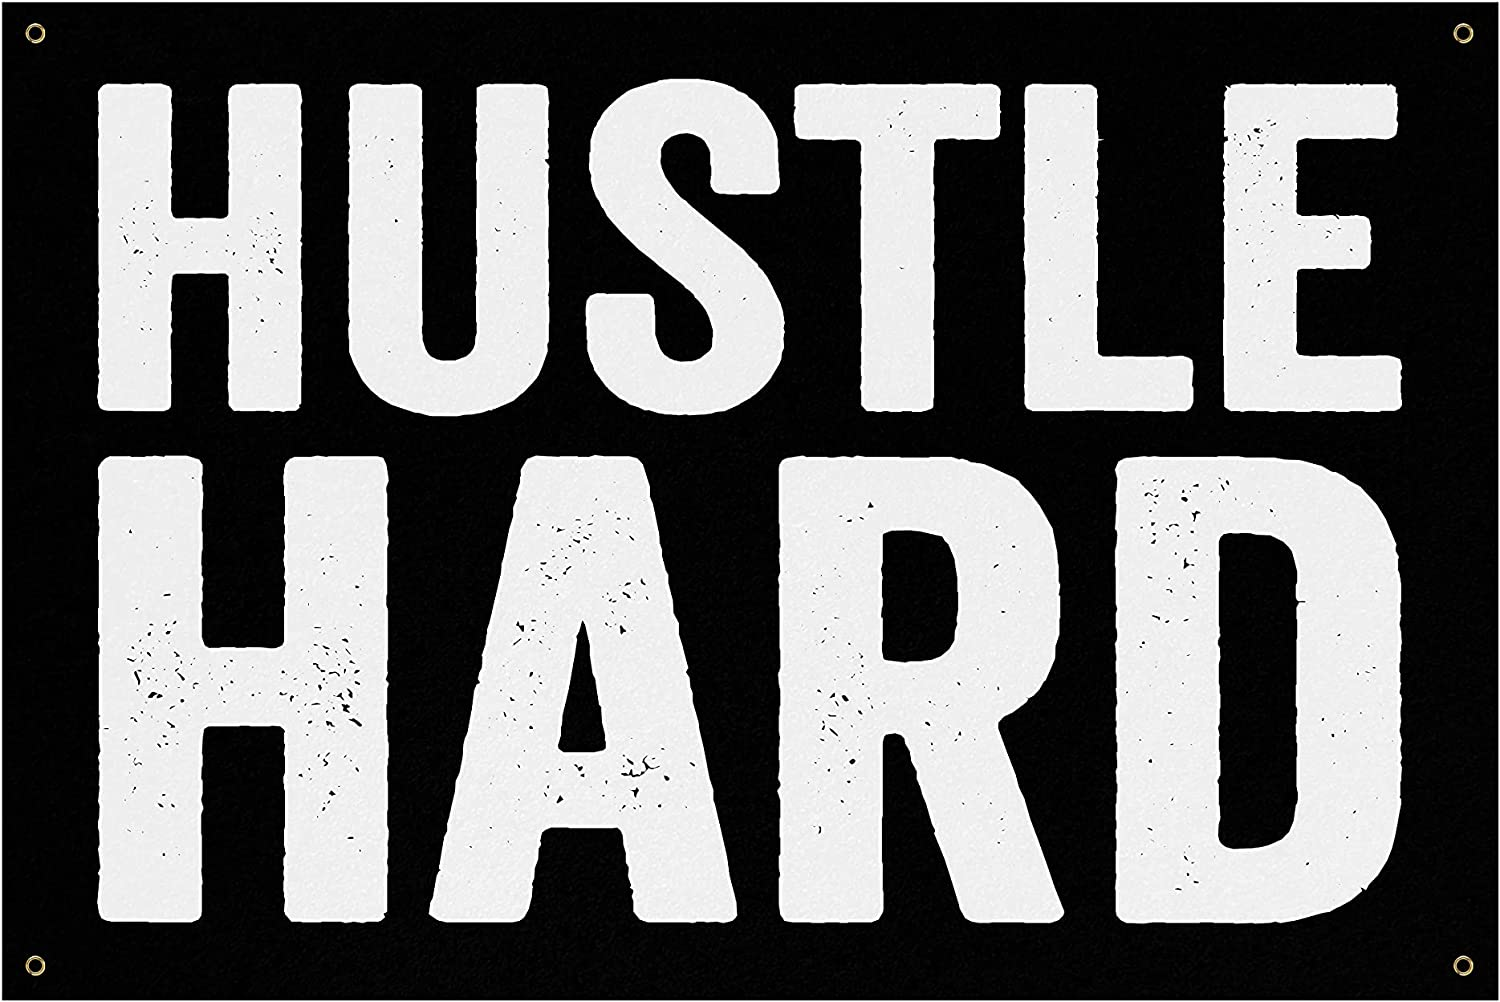 Hustle Hard Now on sale Banner - Home Gym Art Wall Large Outlet sale feature Ga Quotes Decor